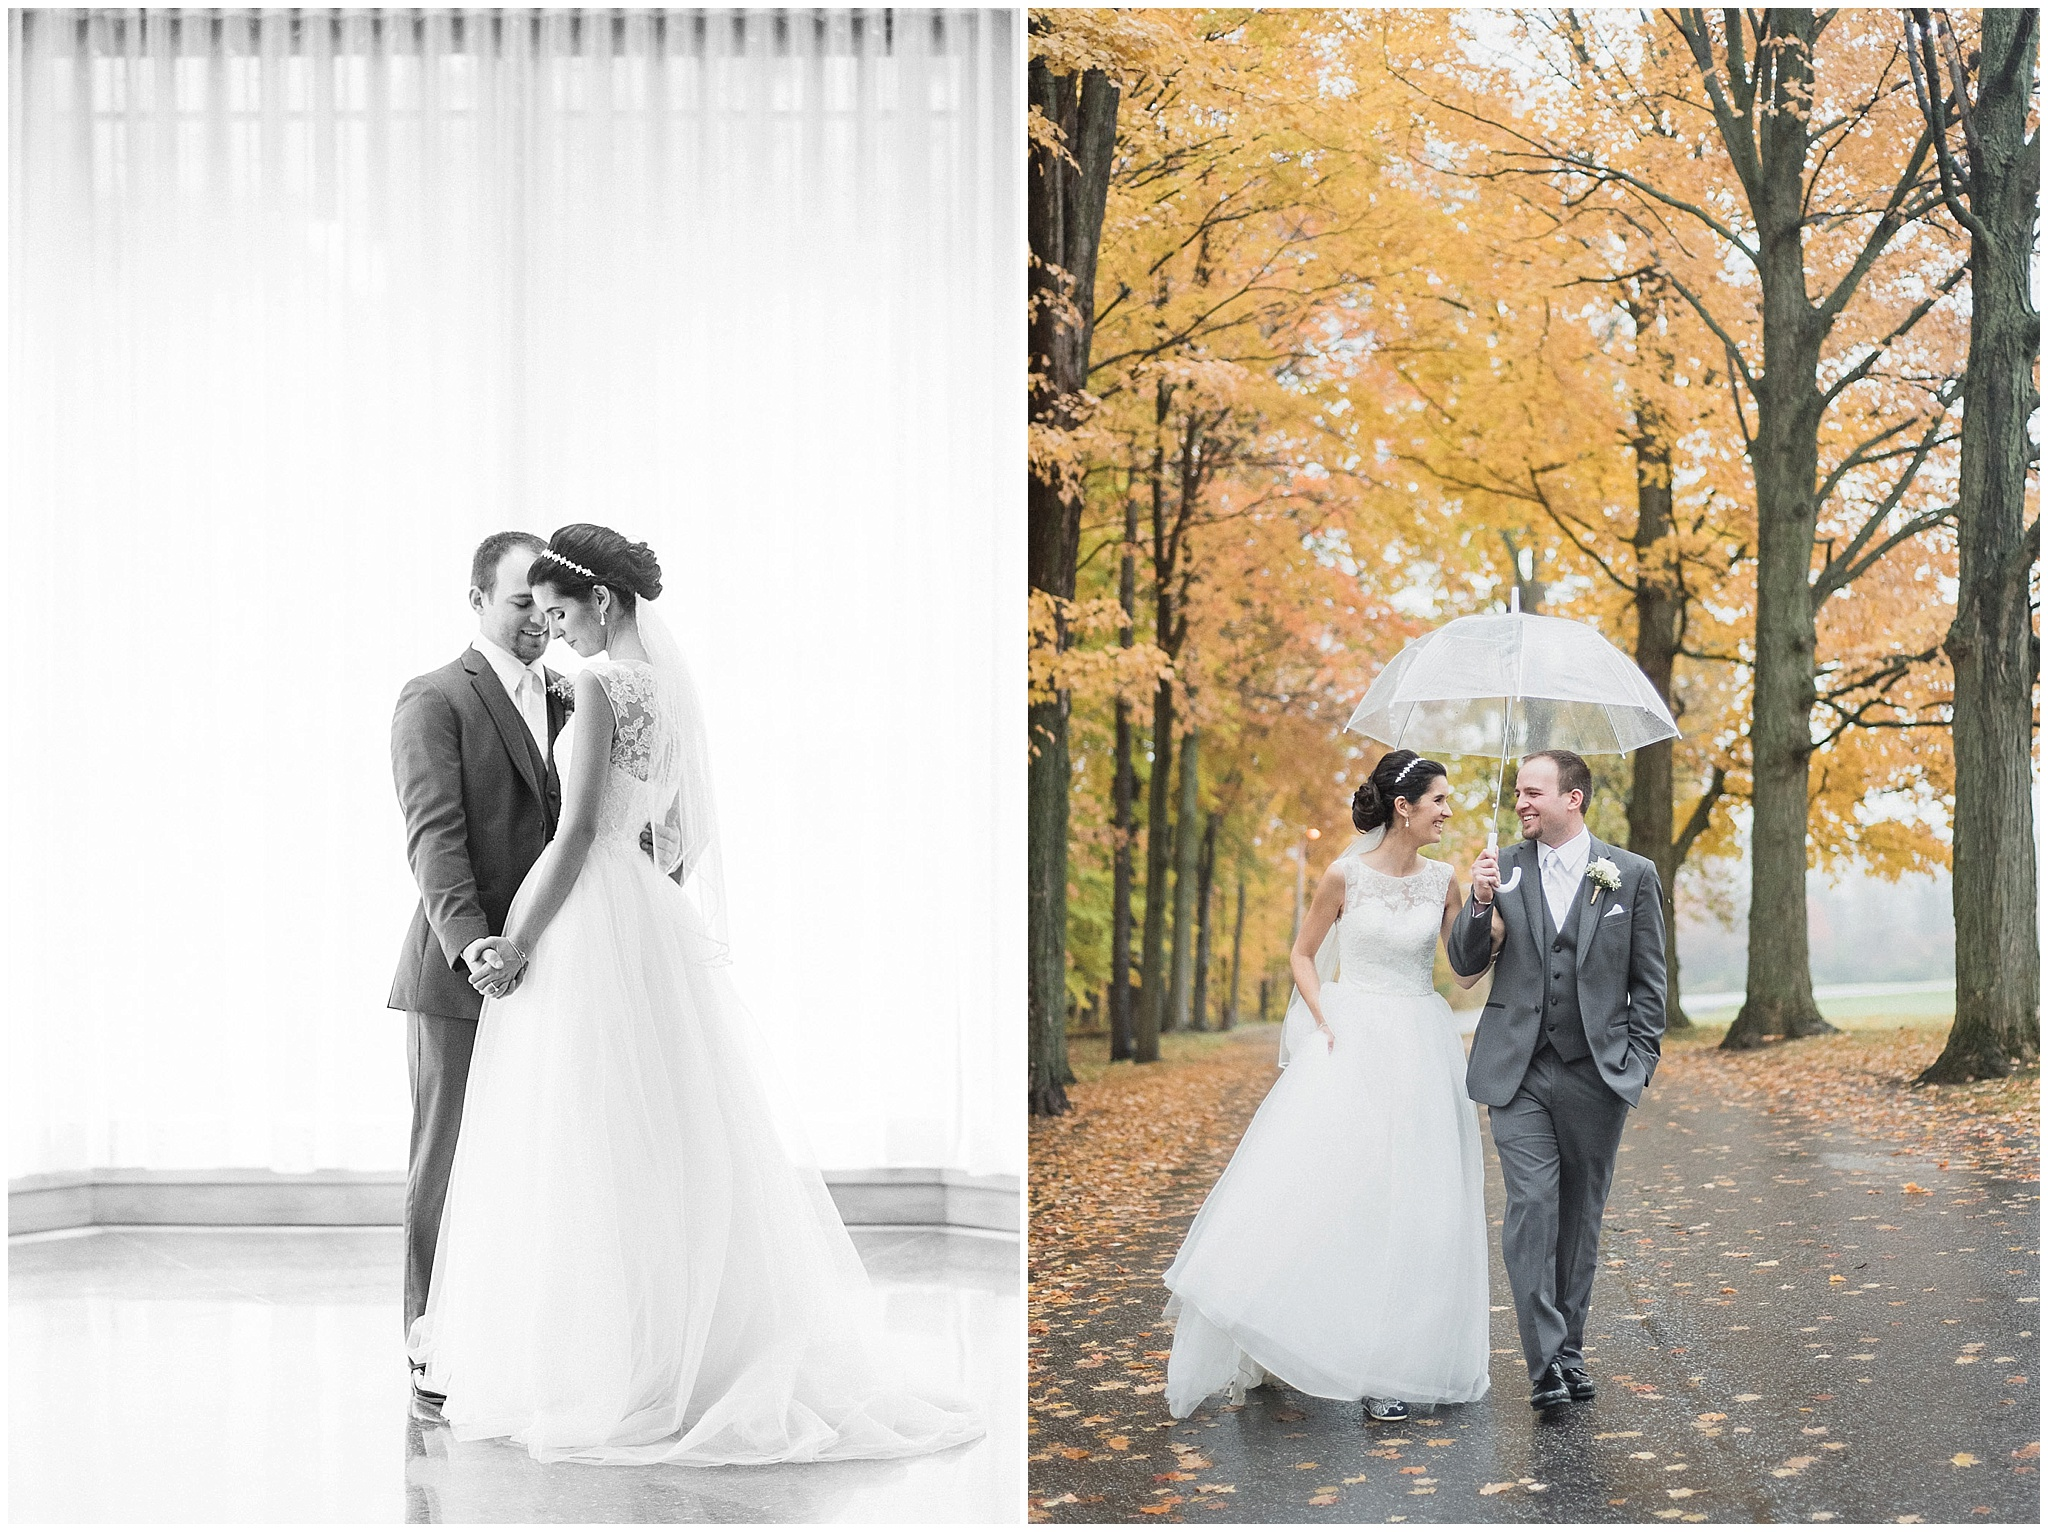 2015 Year in Review: Wedding Photos by Jenn Kavanagh Photography